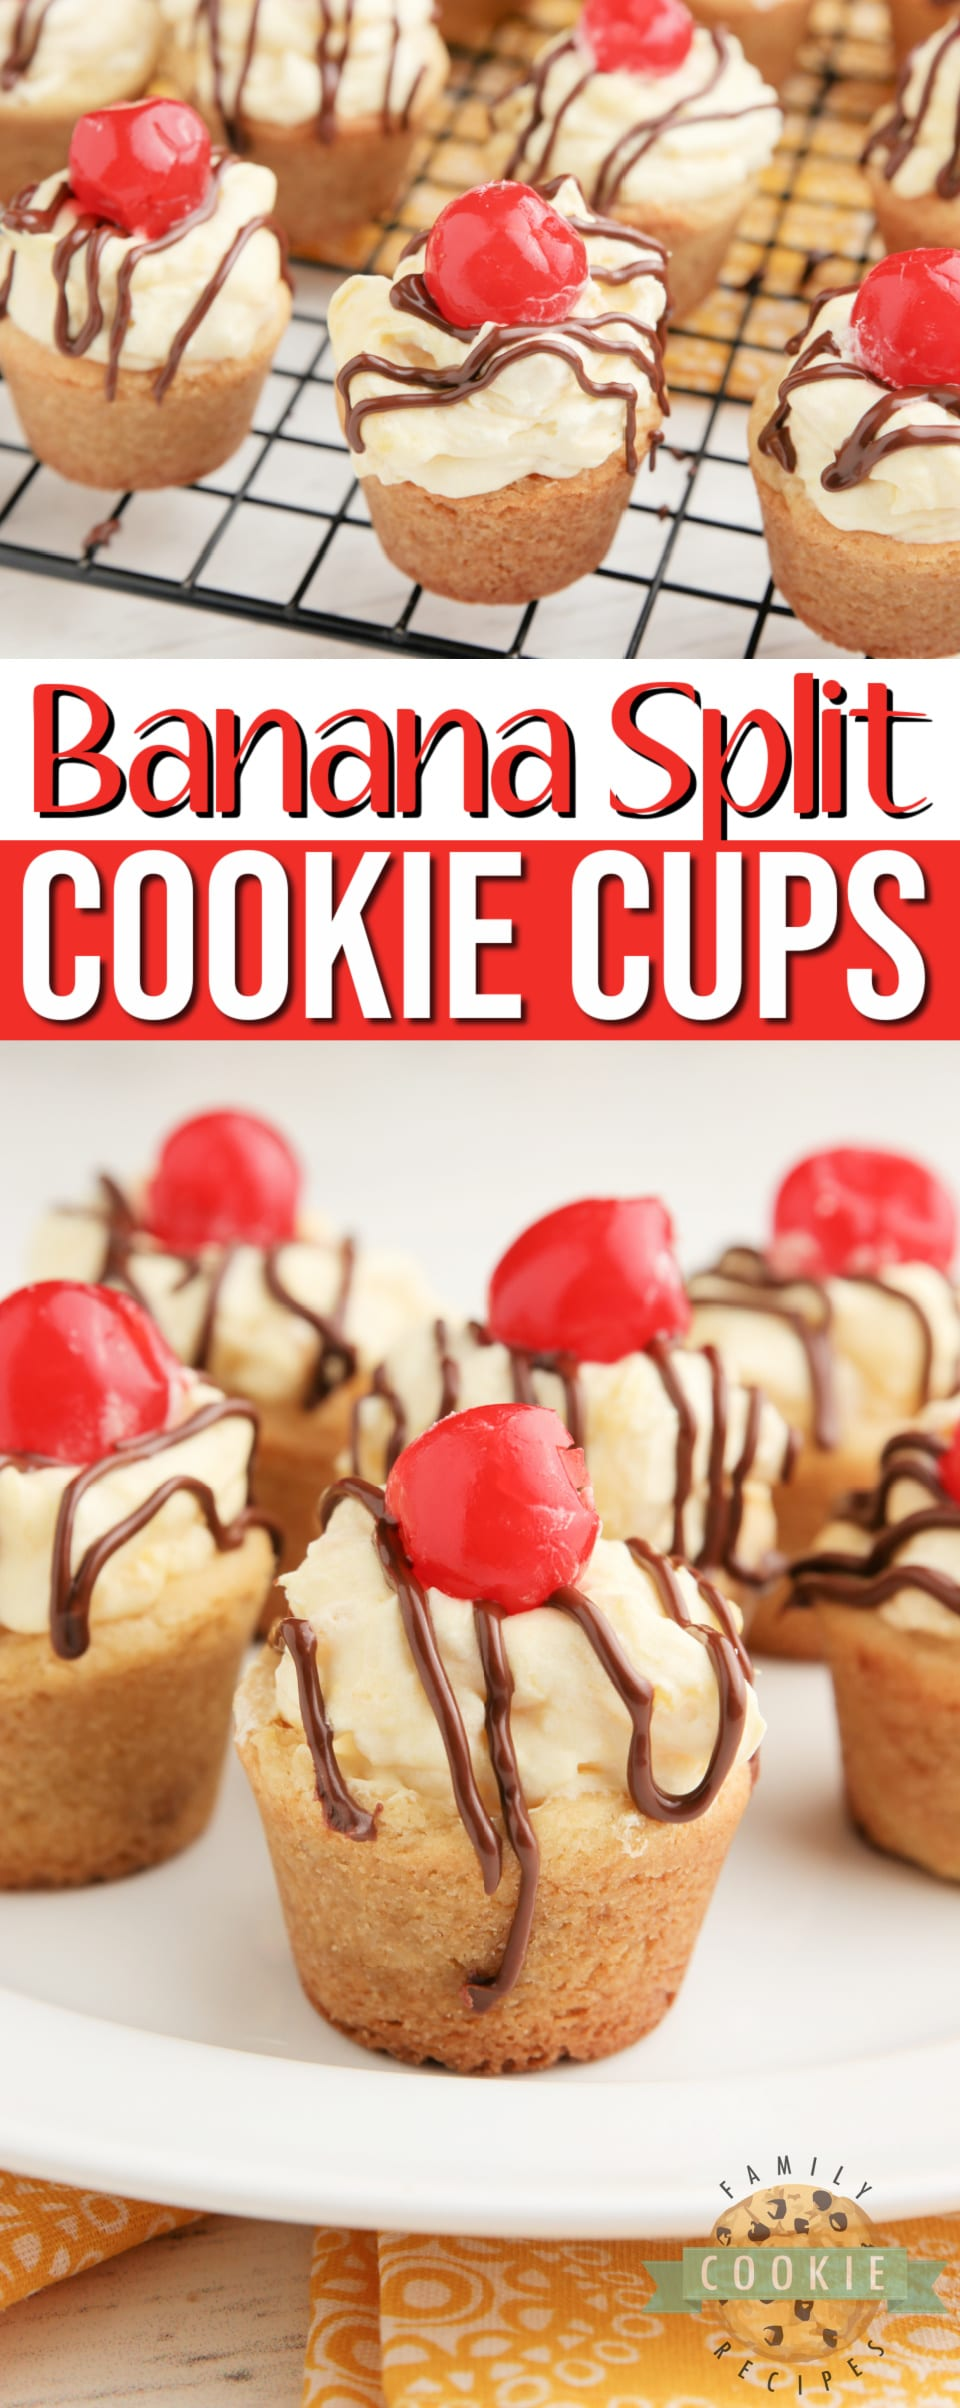 Banana Split Cookie Cups taste like your favorite banana split dessert in cookie form! Banana flavored cookies filled with pineapple cream and topped with chocolate and a cherry!